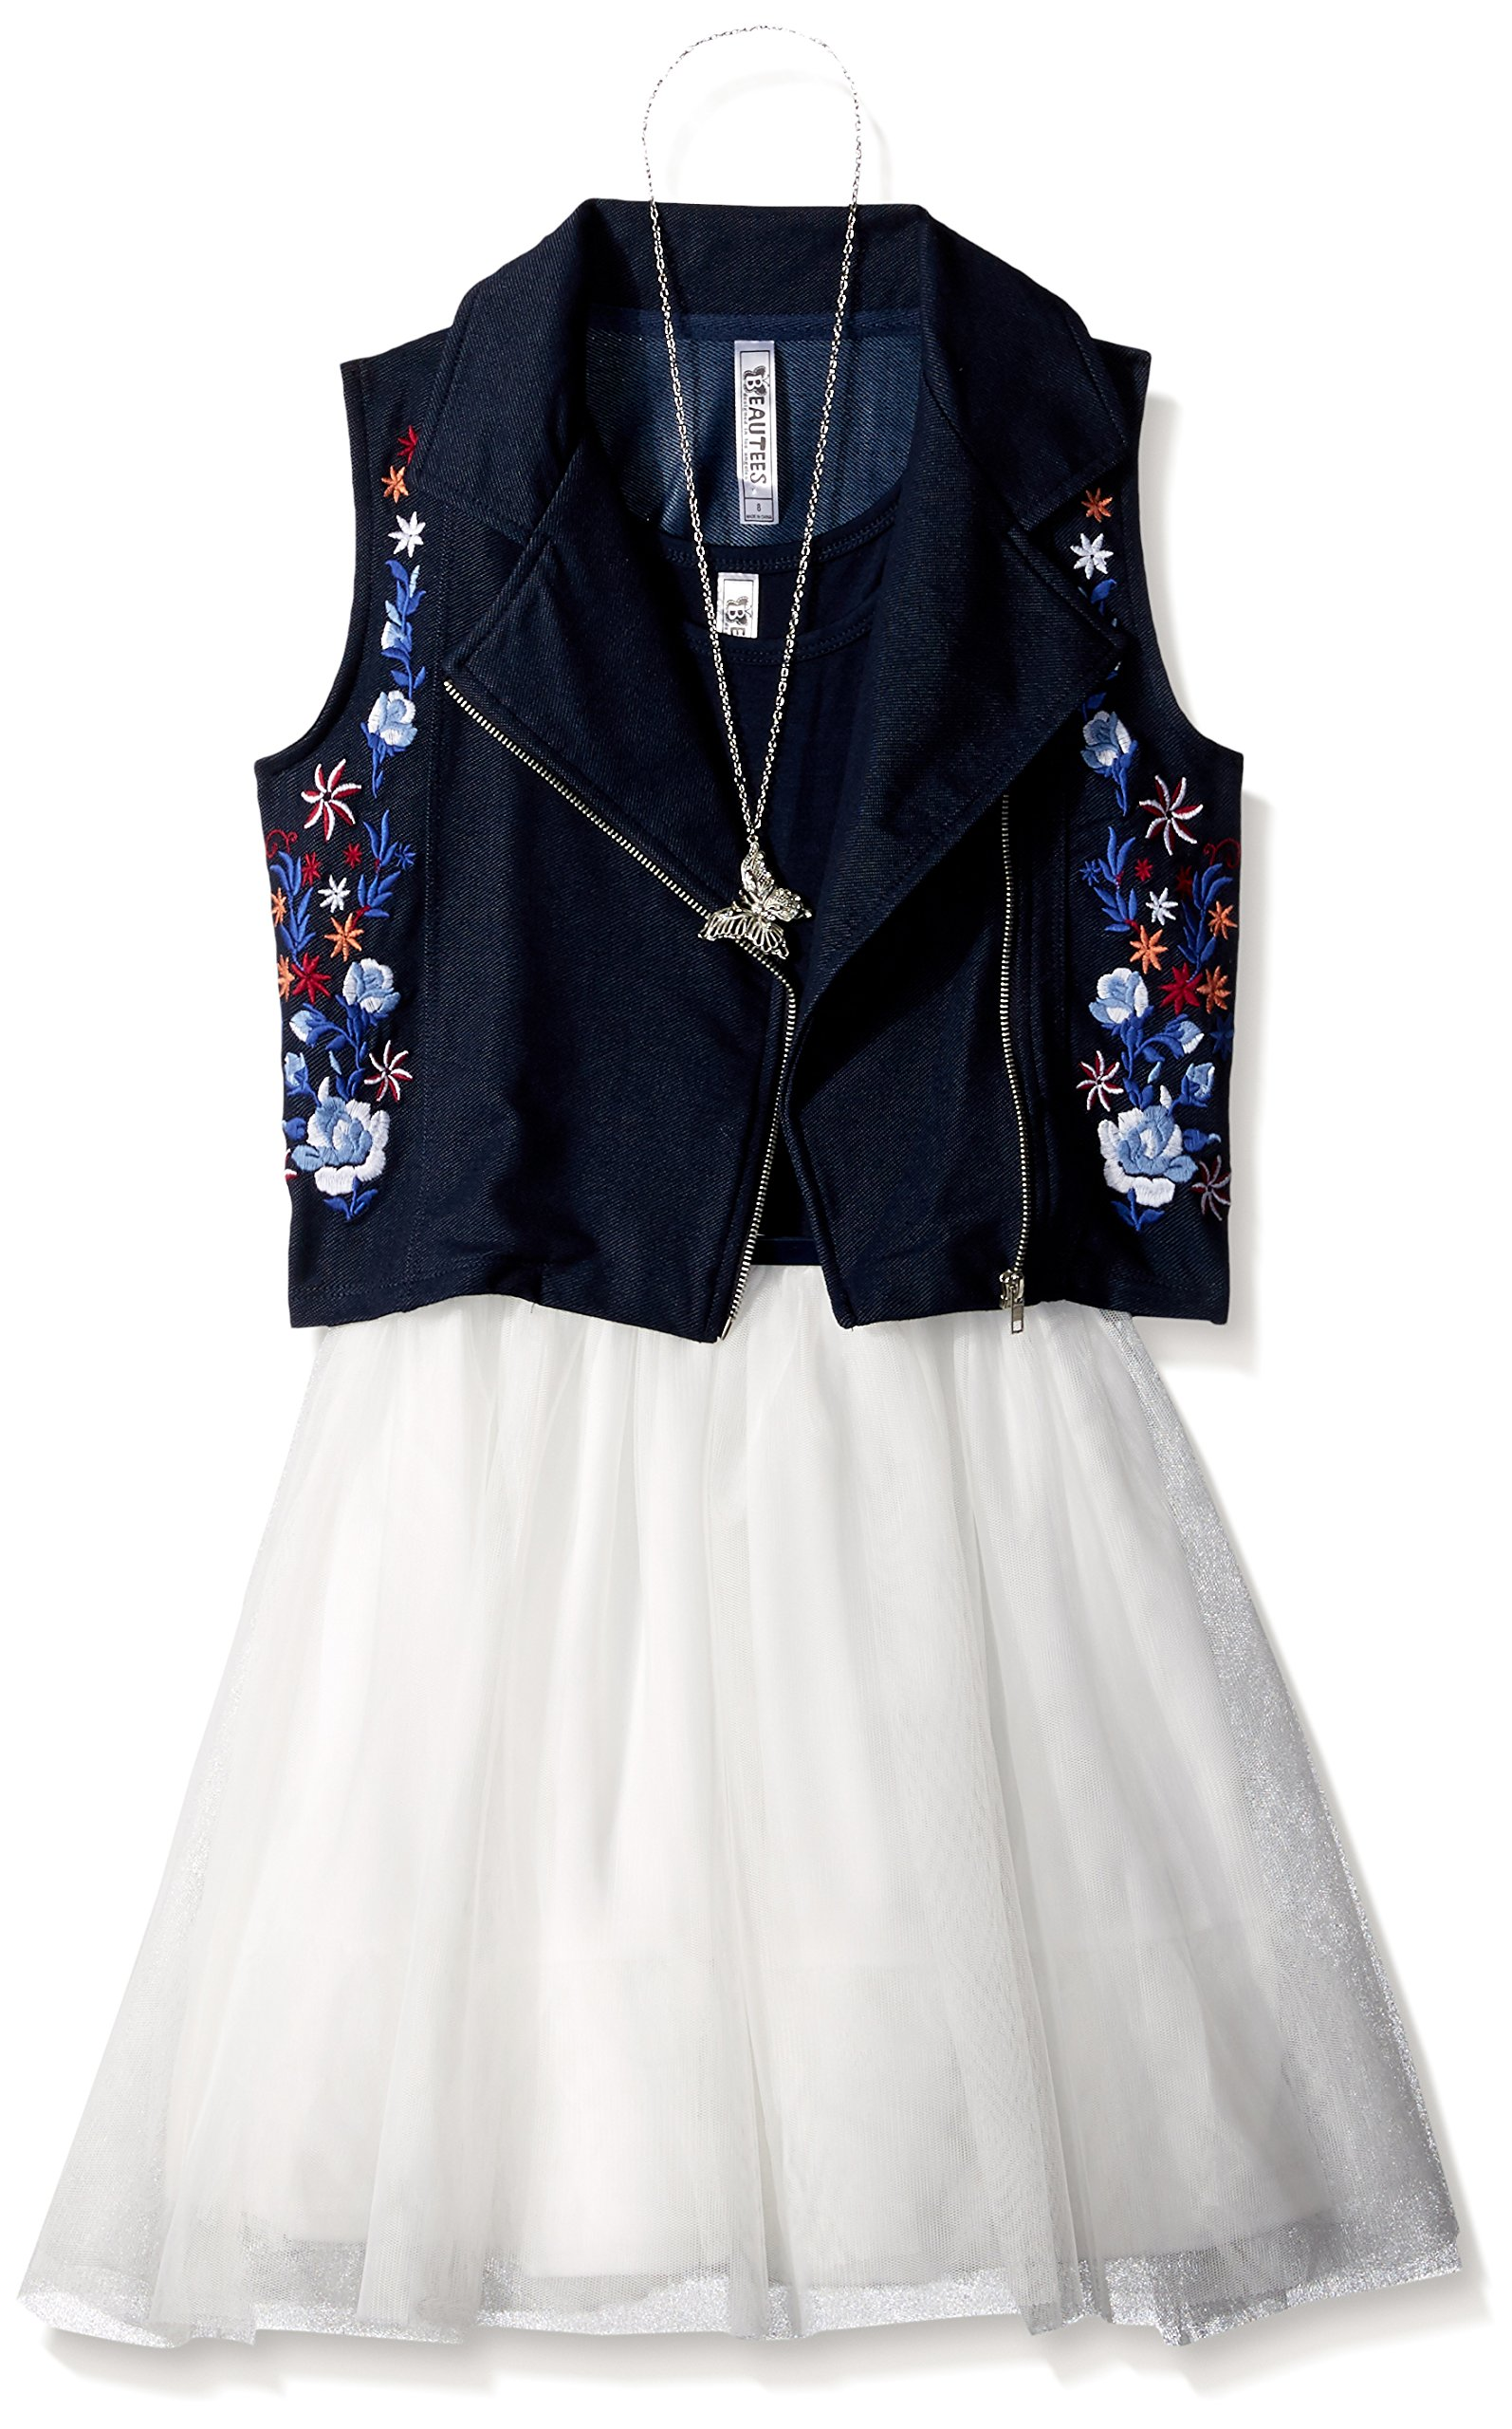 Beautees Big Girls' 2pc Moto Embroidered Jacket/SL Toulle Dress, Denim, 16